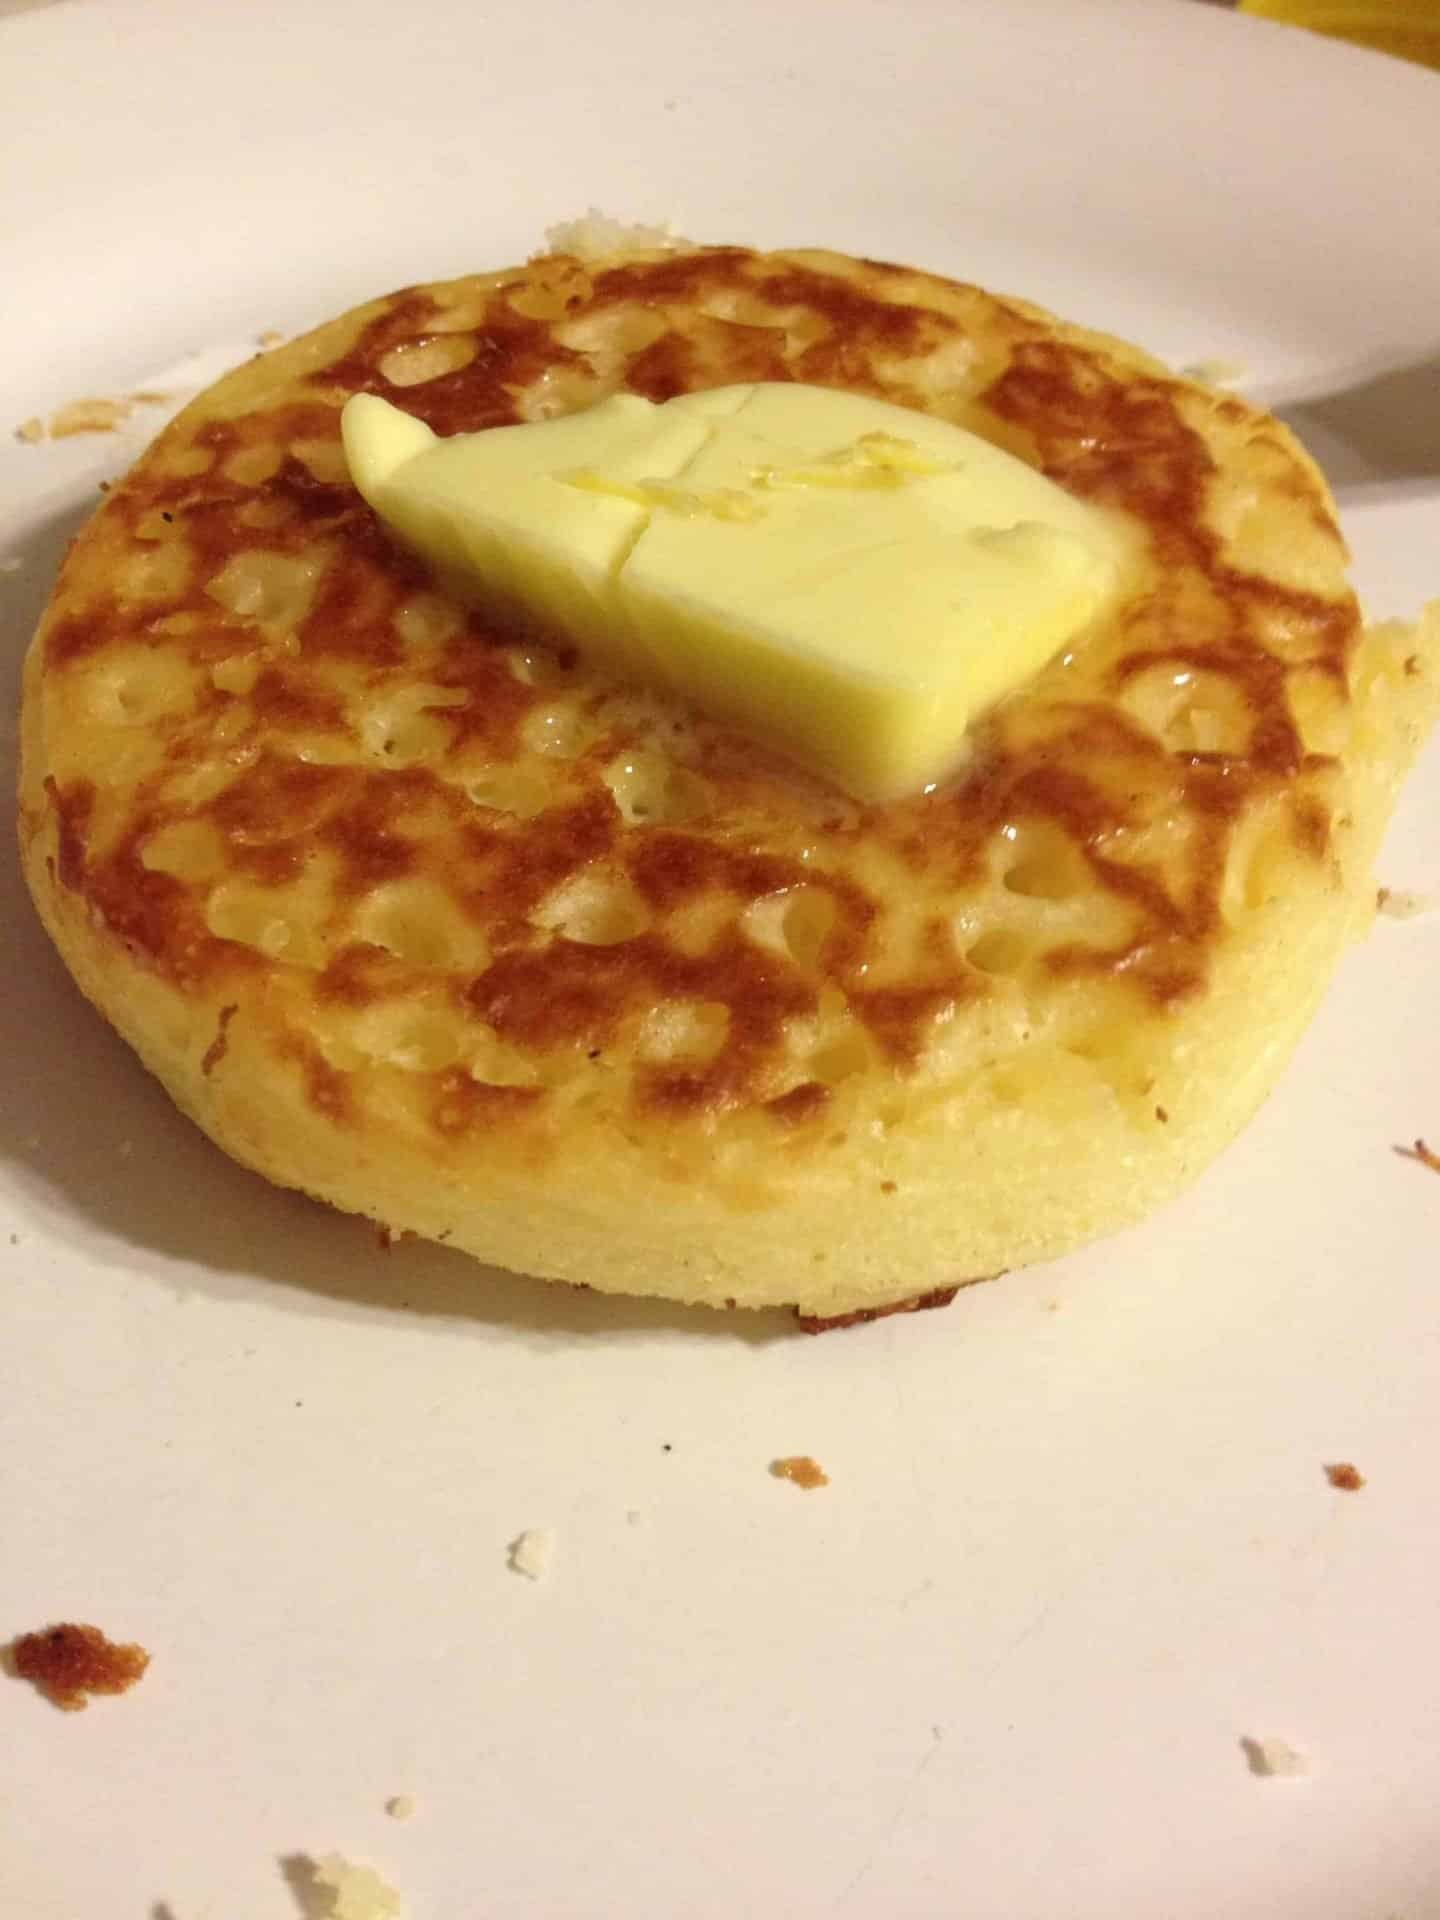 Gluten free, wheat free and dairy free crumpets from Genius